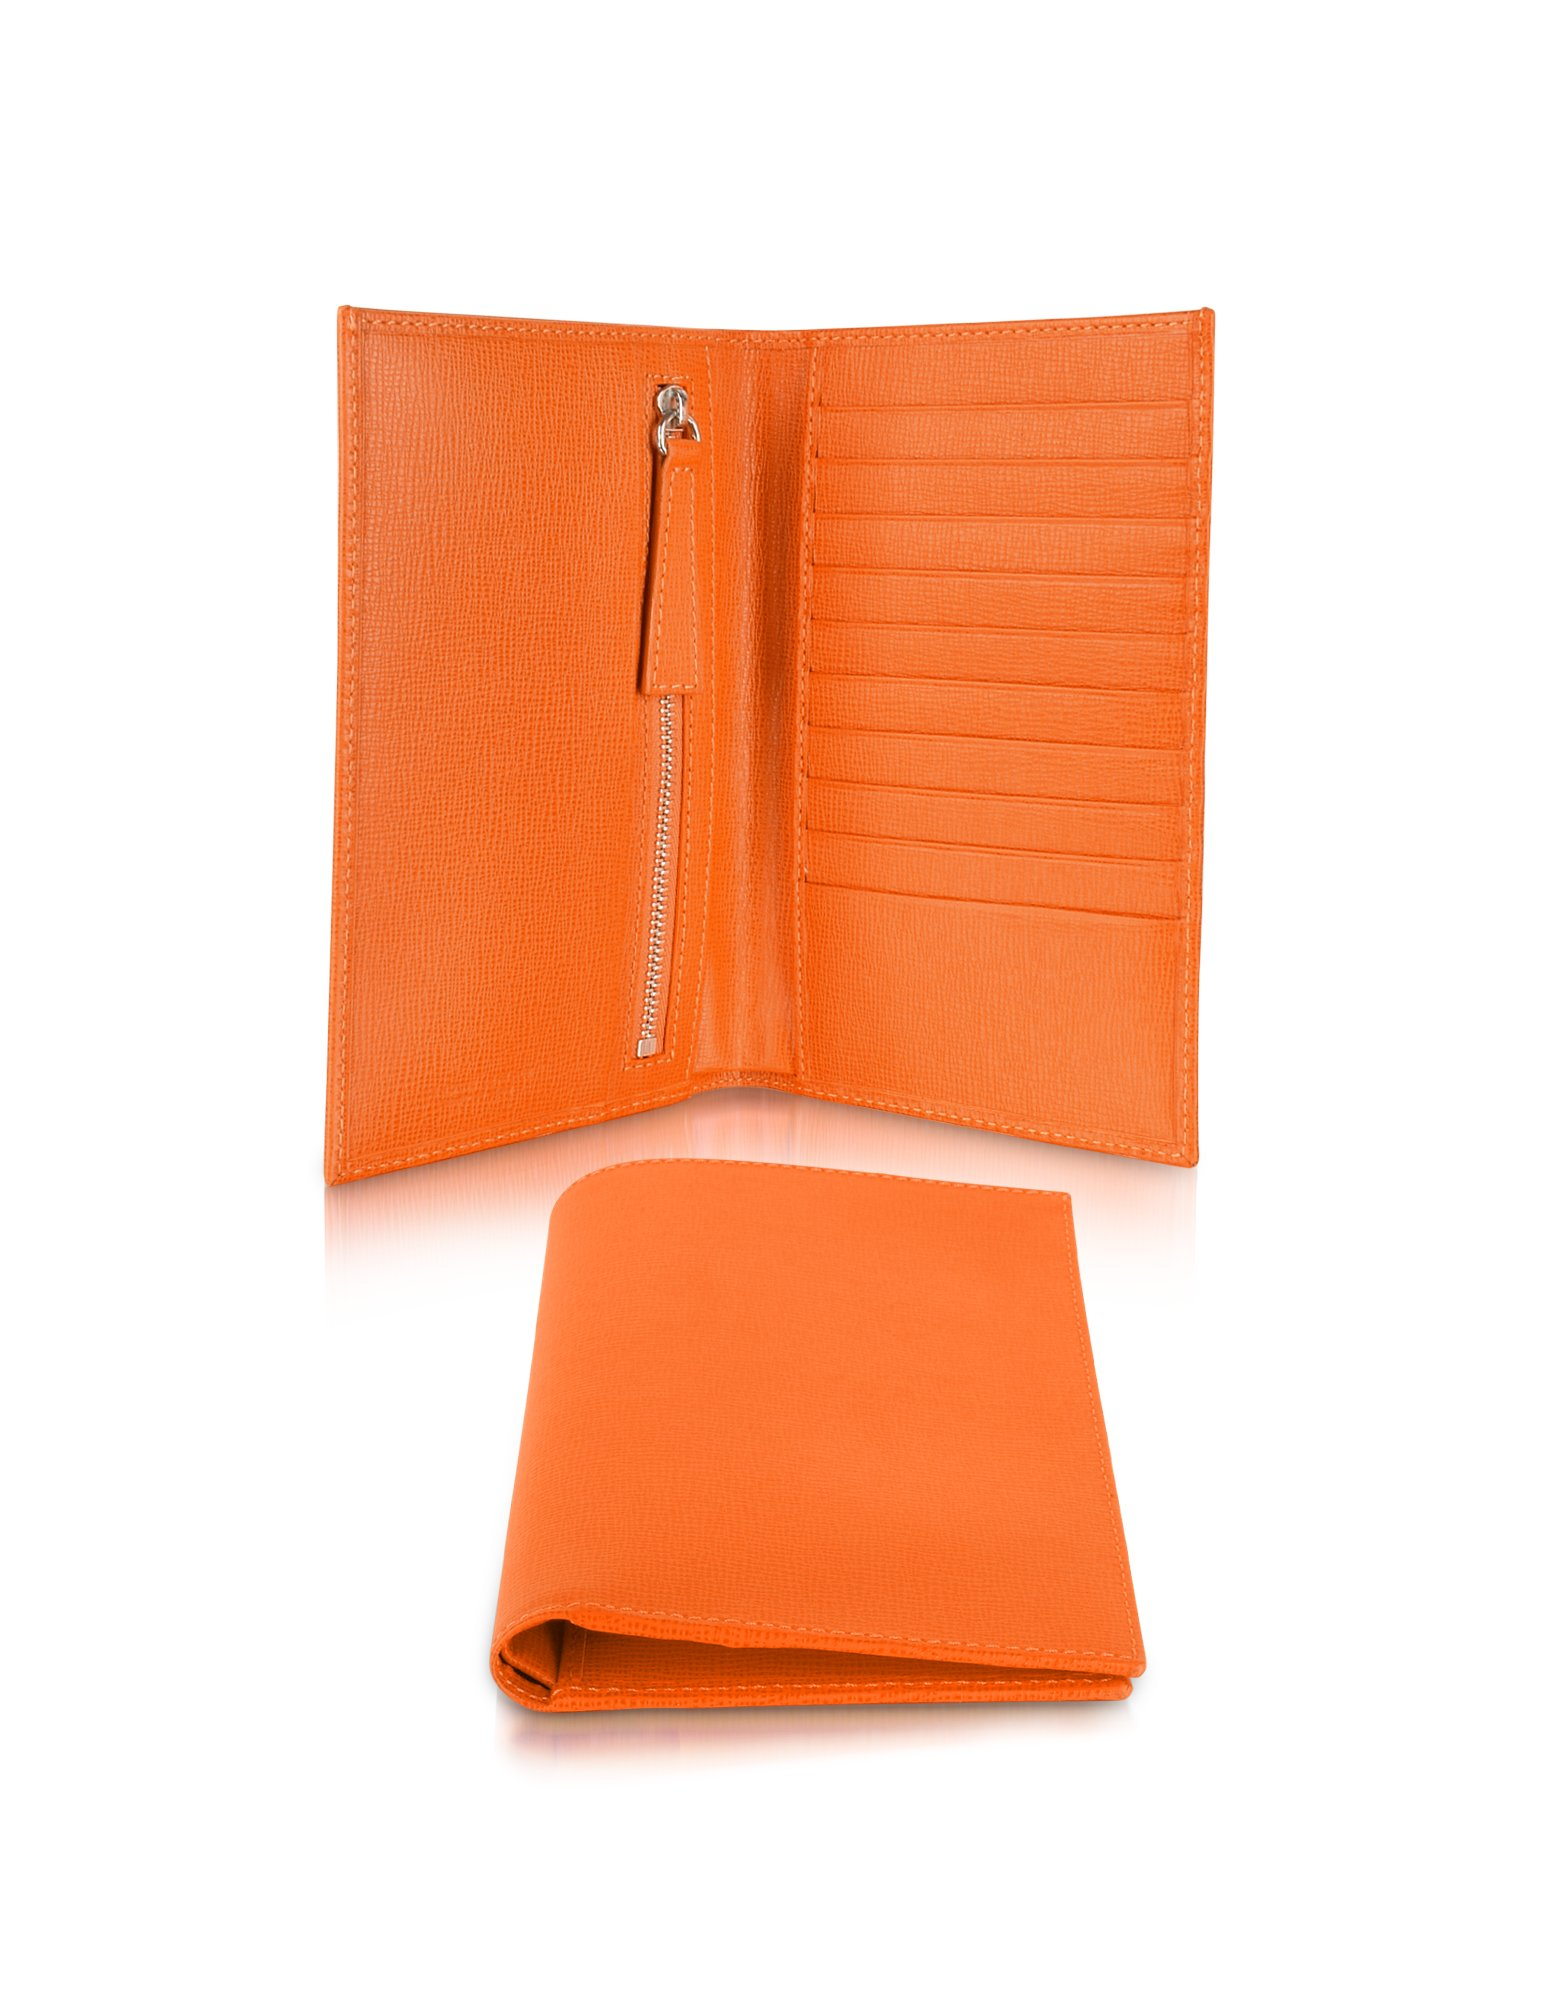 giorgio fedon 1919 class orange grained leather document card holder wallet in orange lyst. Black Bedroom Furniture Sets. Home Design Ideas